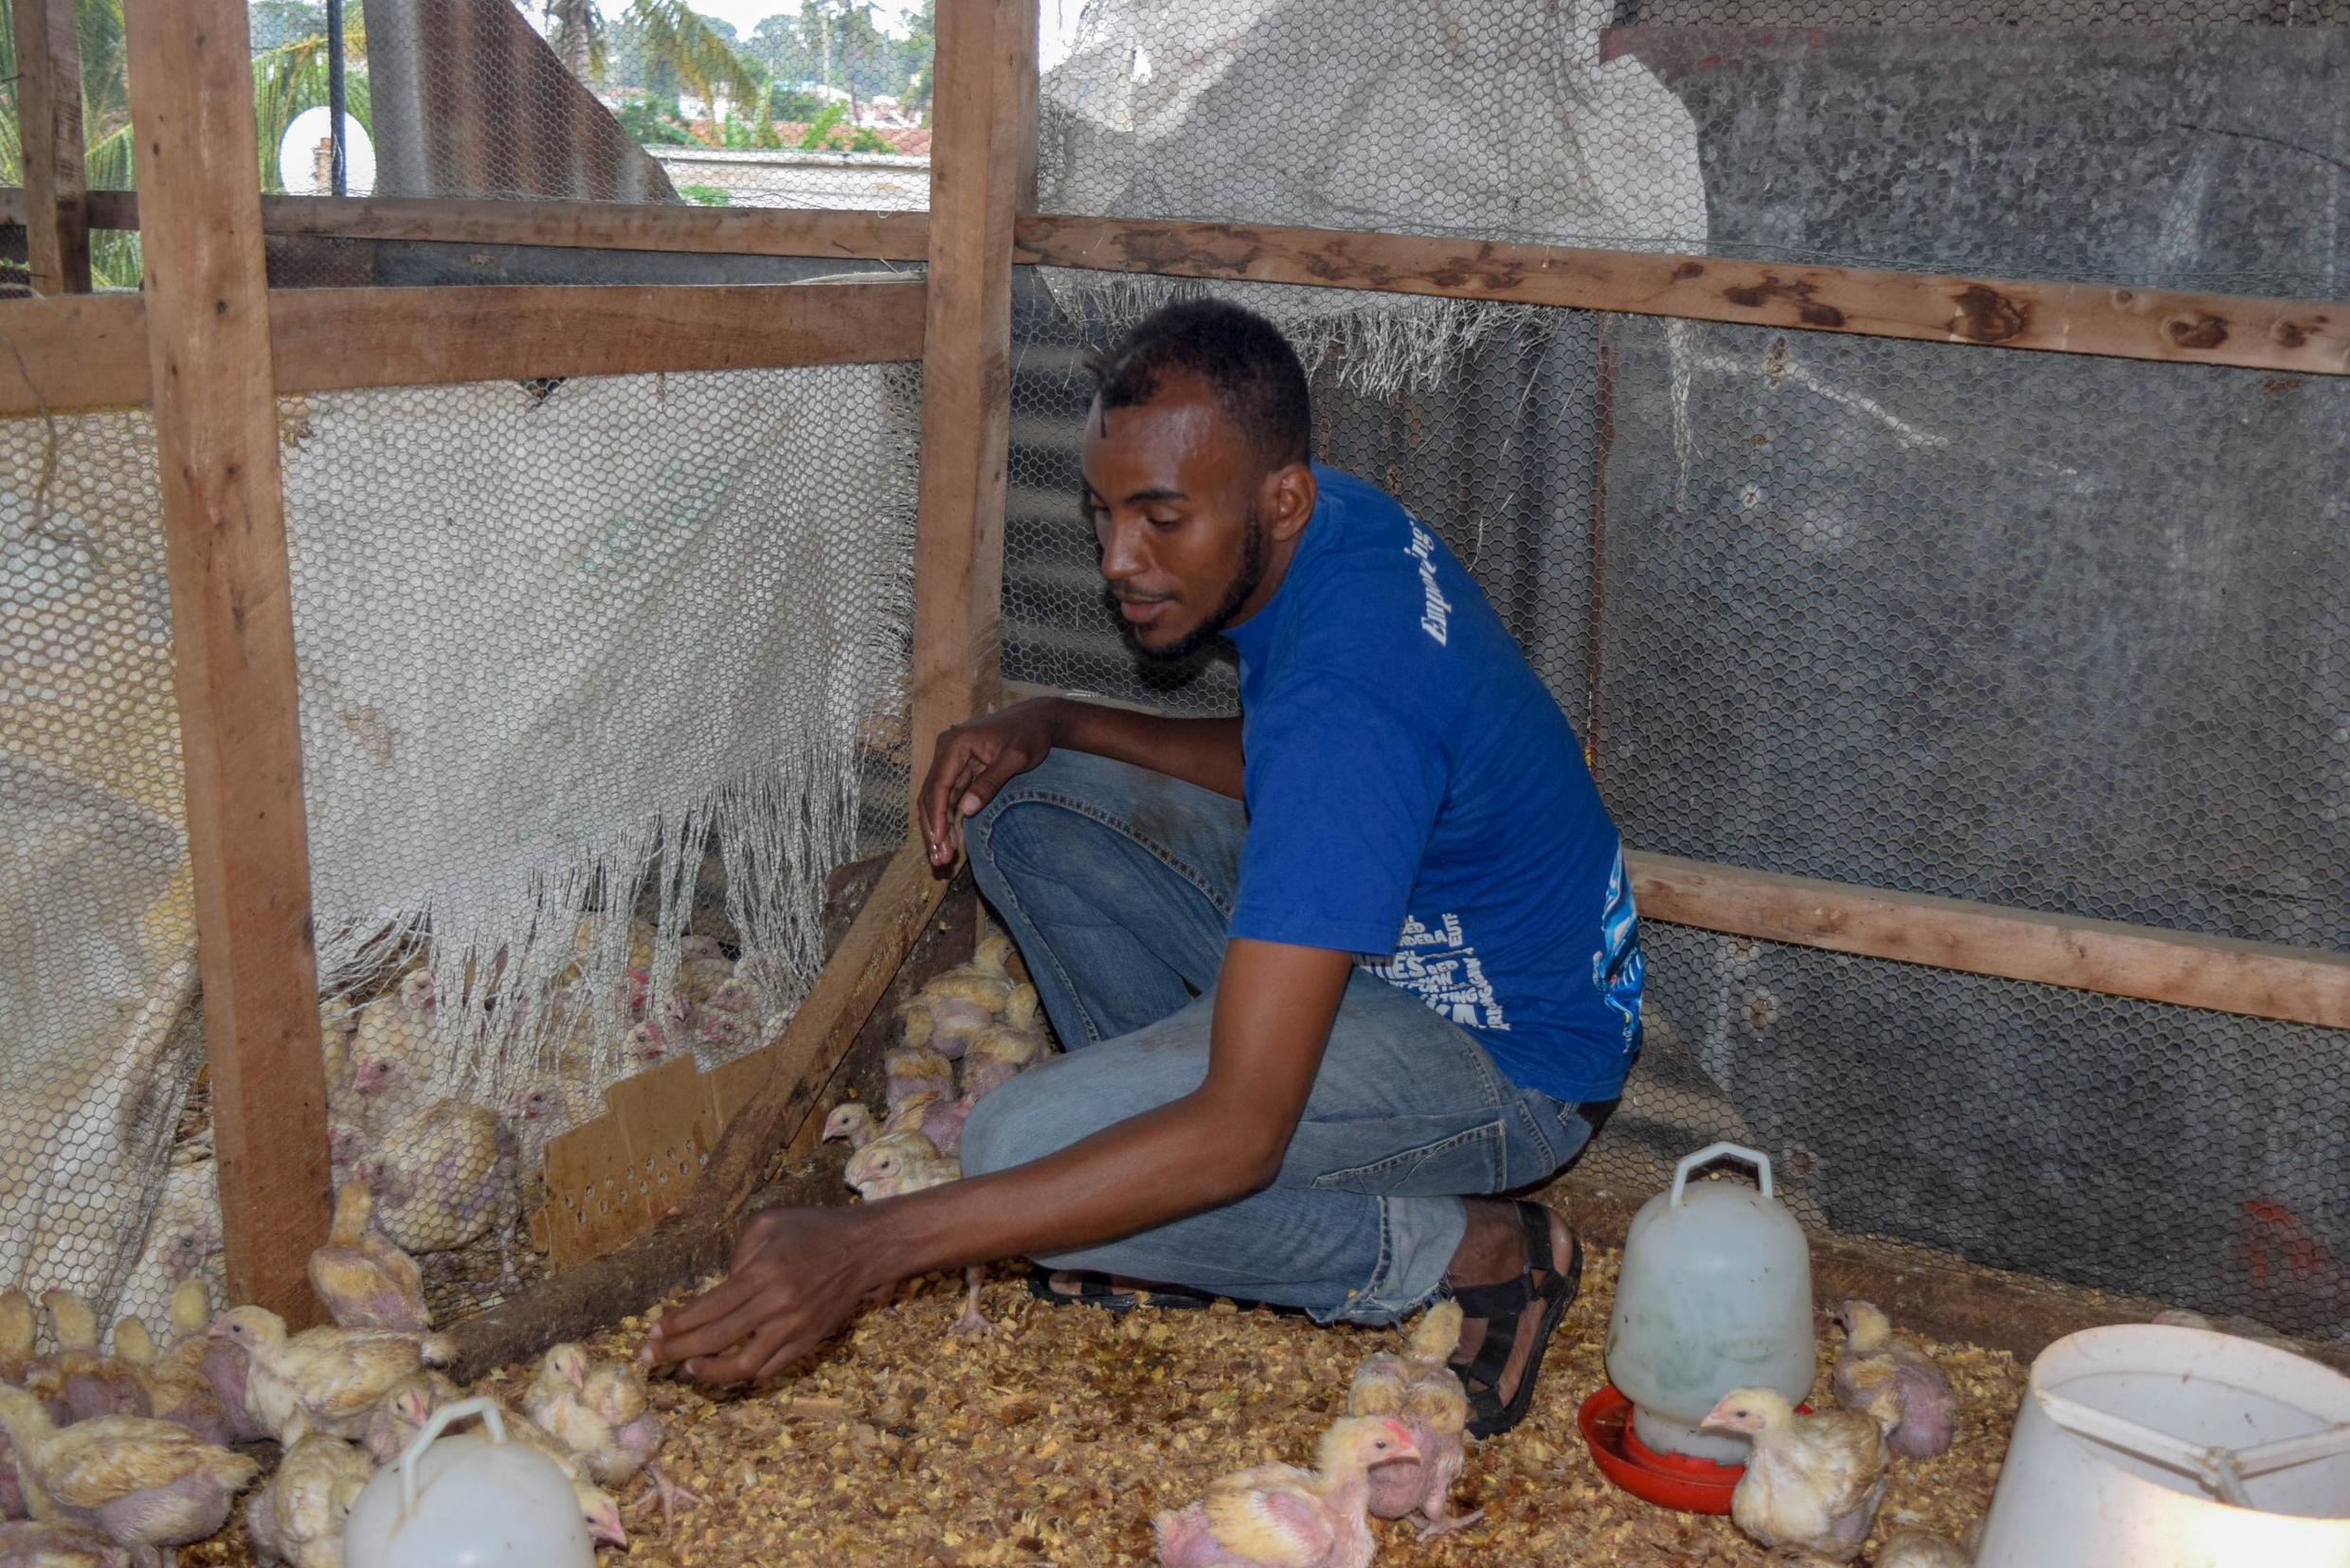 26-year old Abubakar Omar, a beneficiary of the Red Cross programme, works on a poultry farm run by the Mtopanga Lazio Youth Club in Mombasa county.